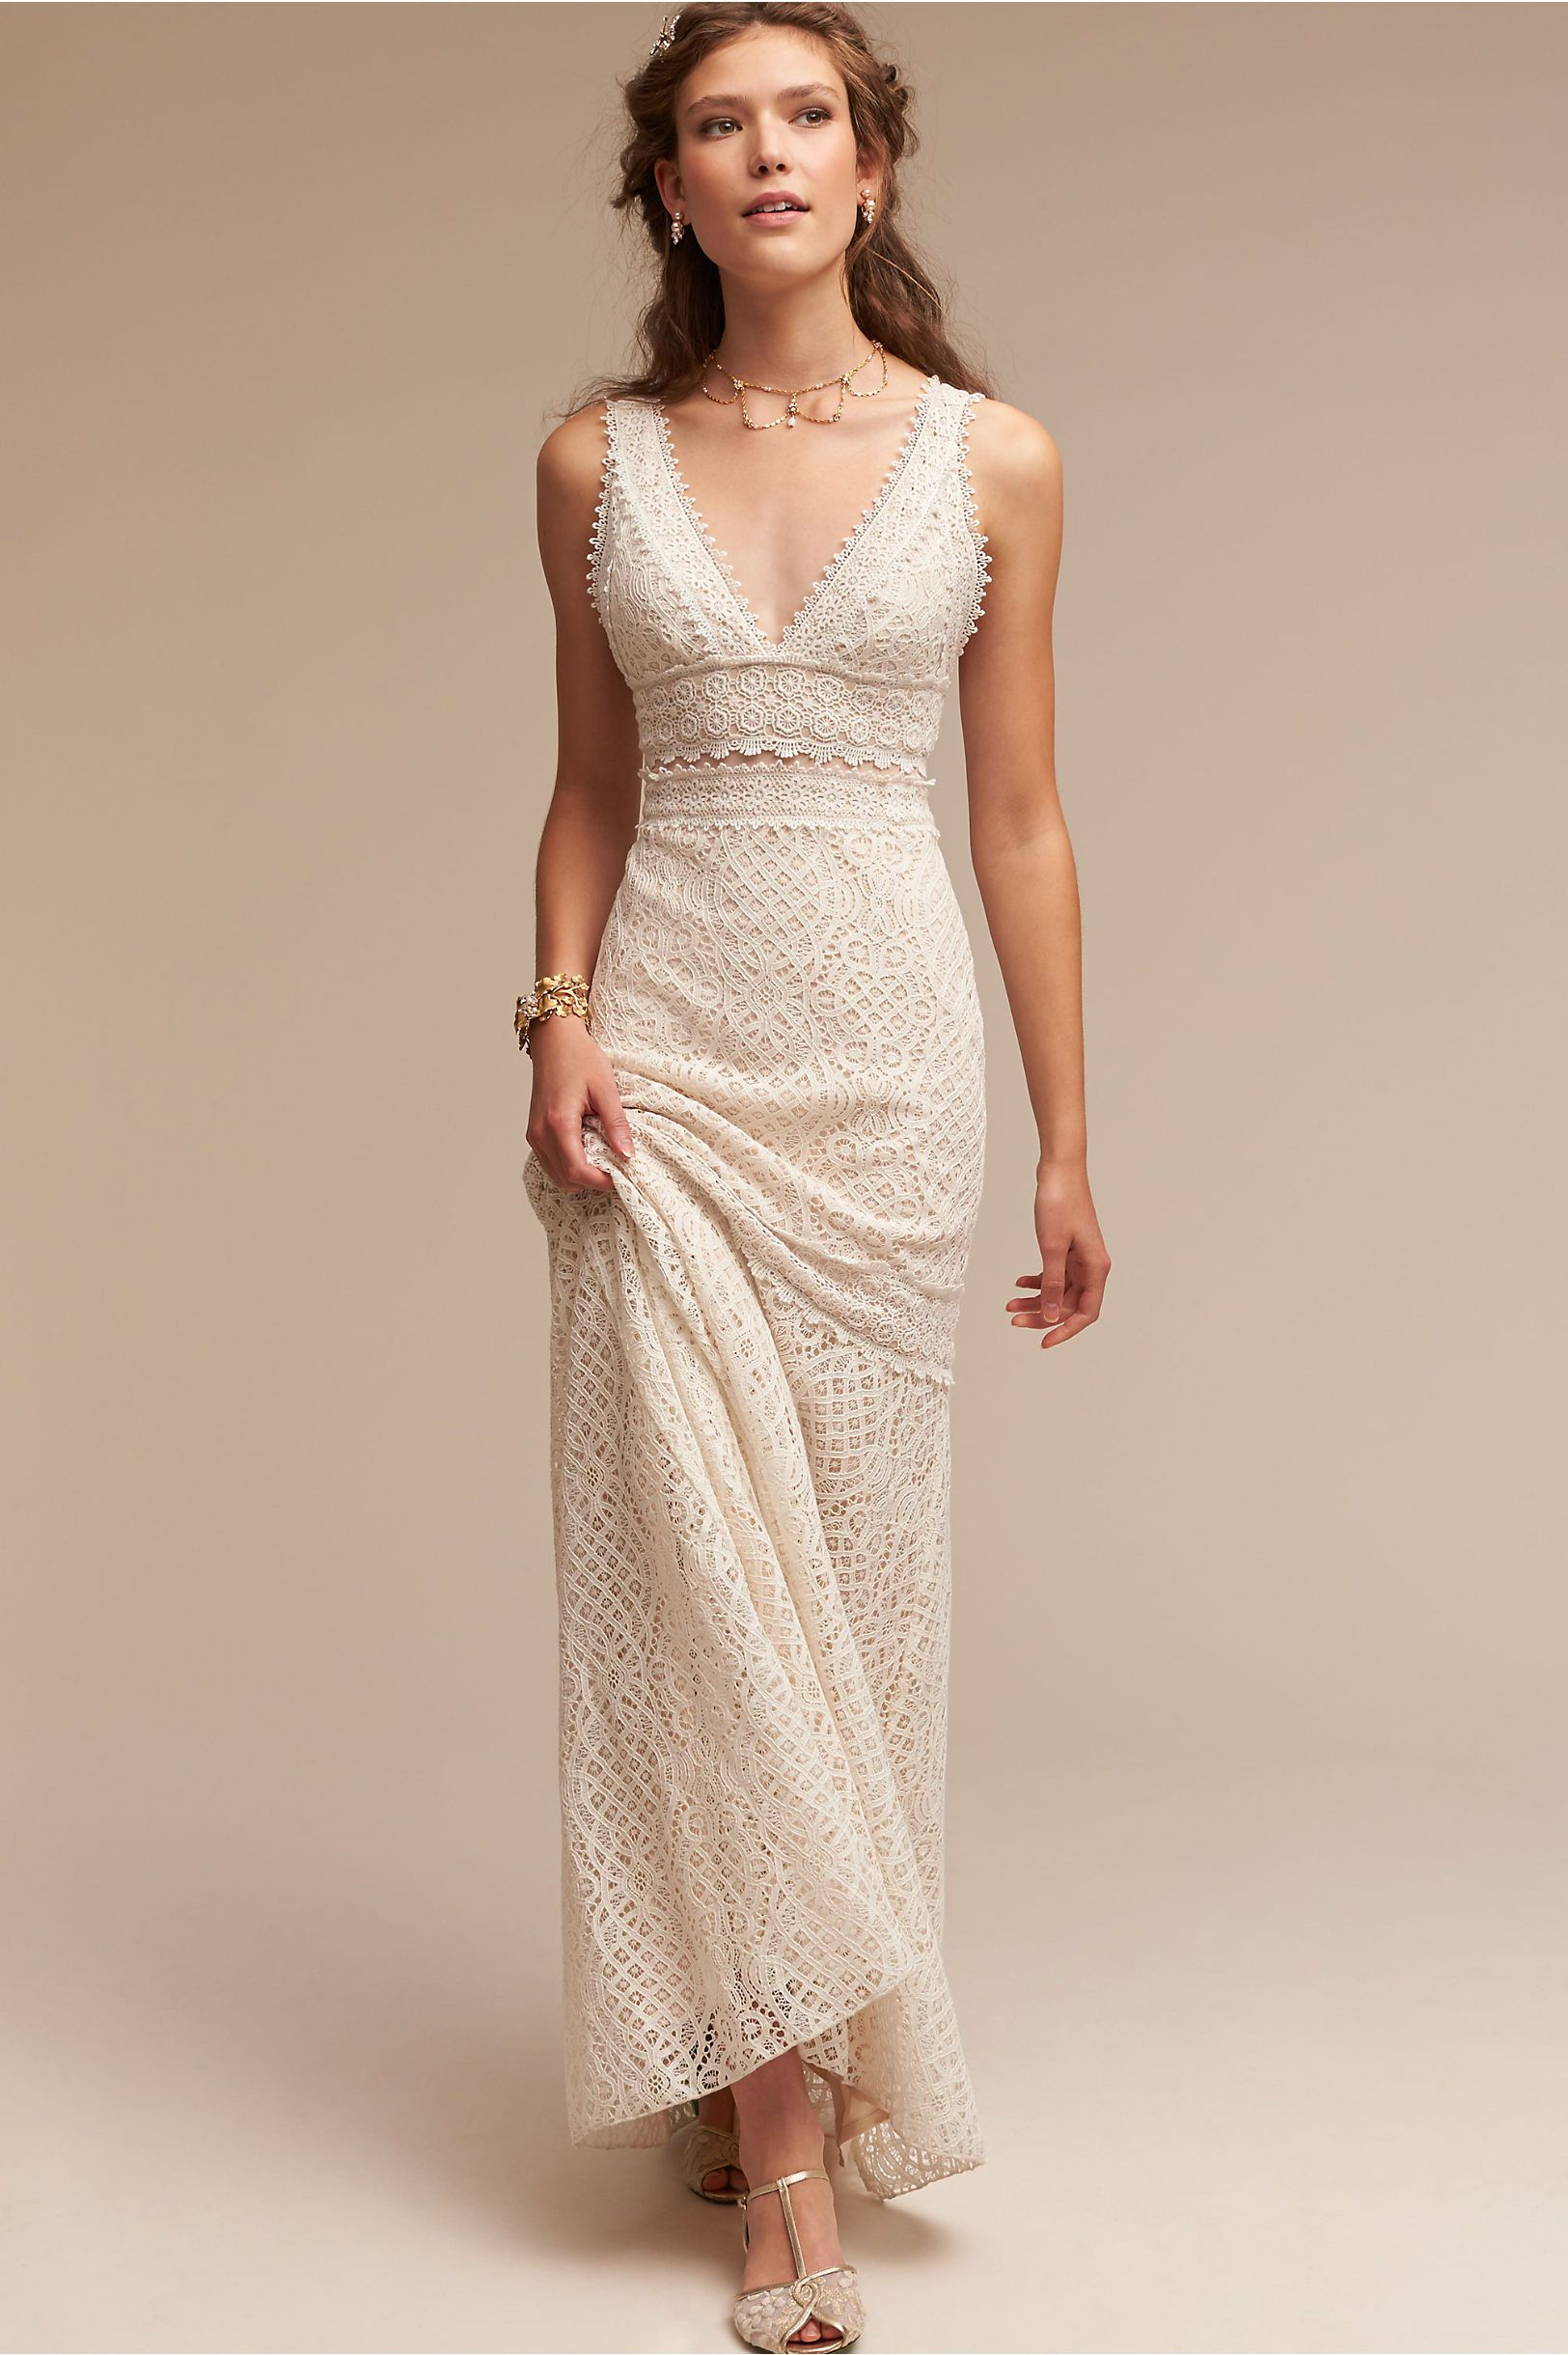 7c2bee4db518 BHLDN's Tadashi Shoji Kiely Gown in Ivory/natural | Products in 2019 ...